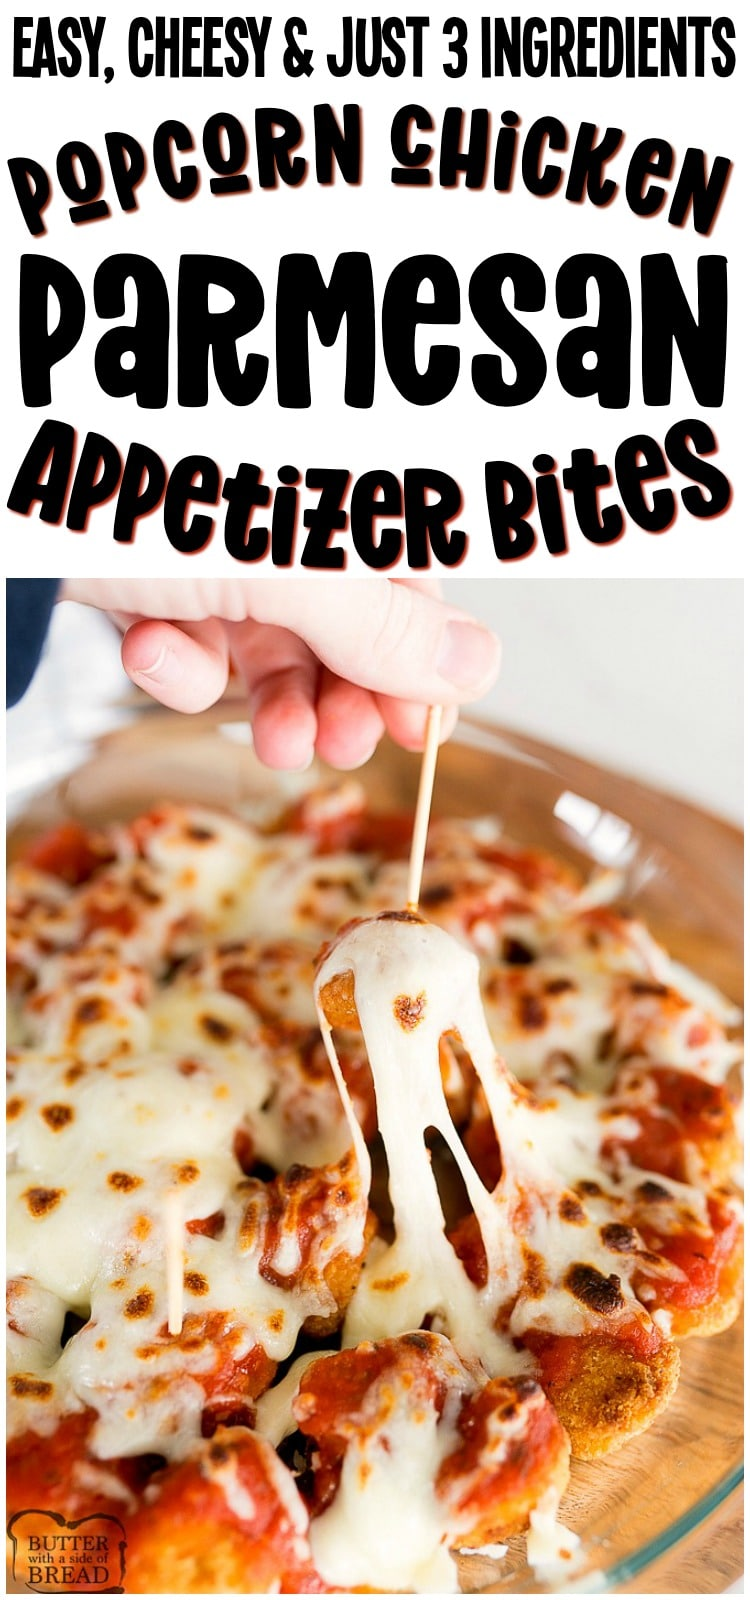 Chicken Parmesan Bites are a delicious appetizer perfect for the big game! With popcorn chicken, a little marinara sauce and mozzarella cheese, this pop-able appetizer couldn't be easier!